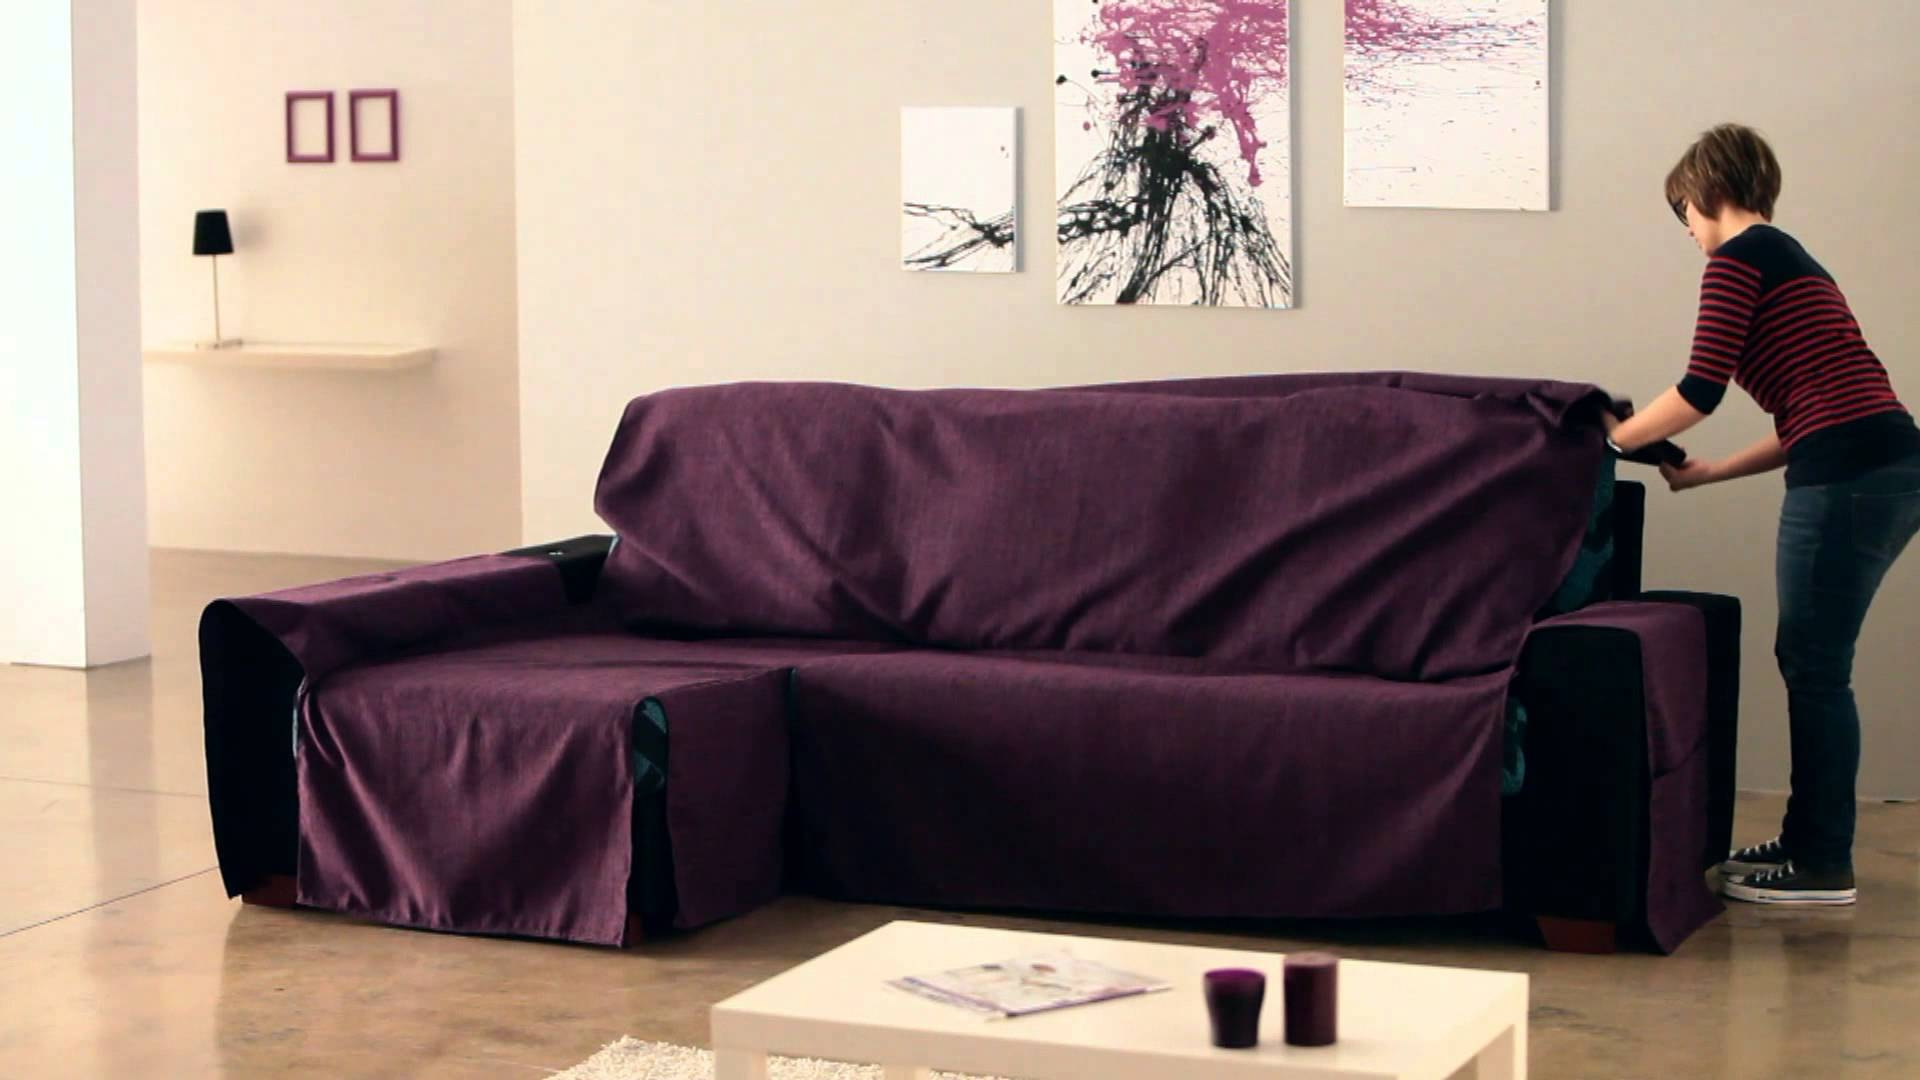 How To Put An Universal Chaise Sofa Covers Youtube Within Chaise Sofa Covers (#7 of 12)